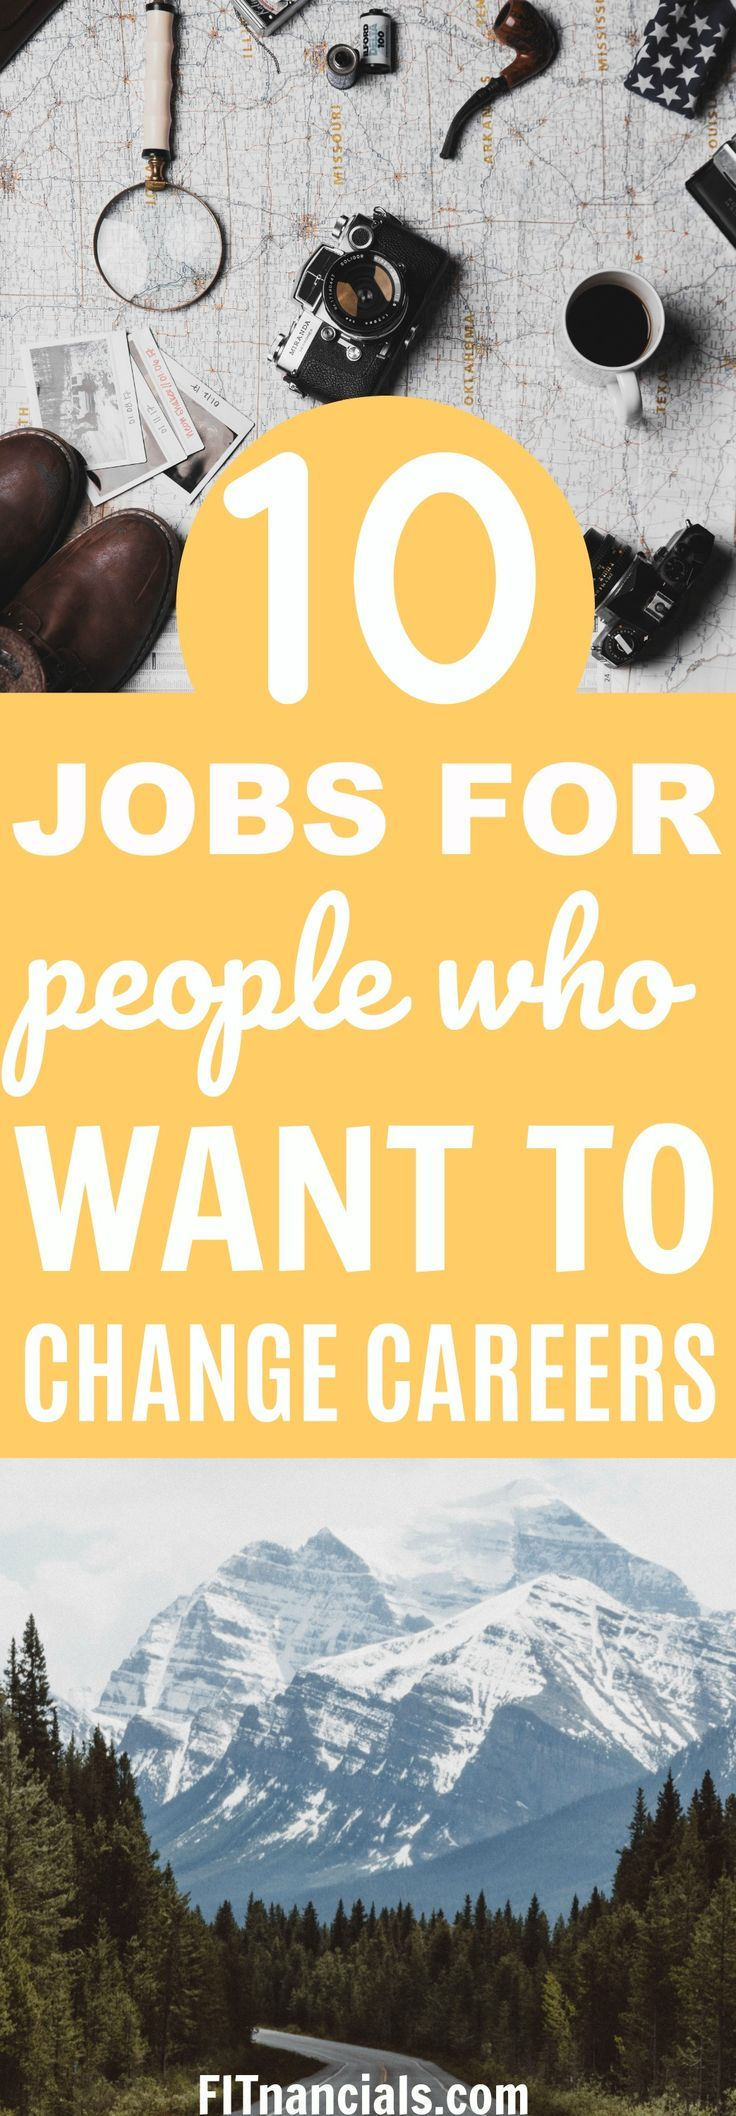 10 Jobs Perfect For People Who Want To Change Careers via @fitnancials